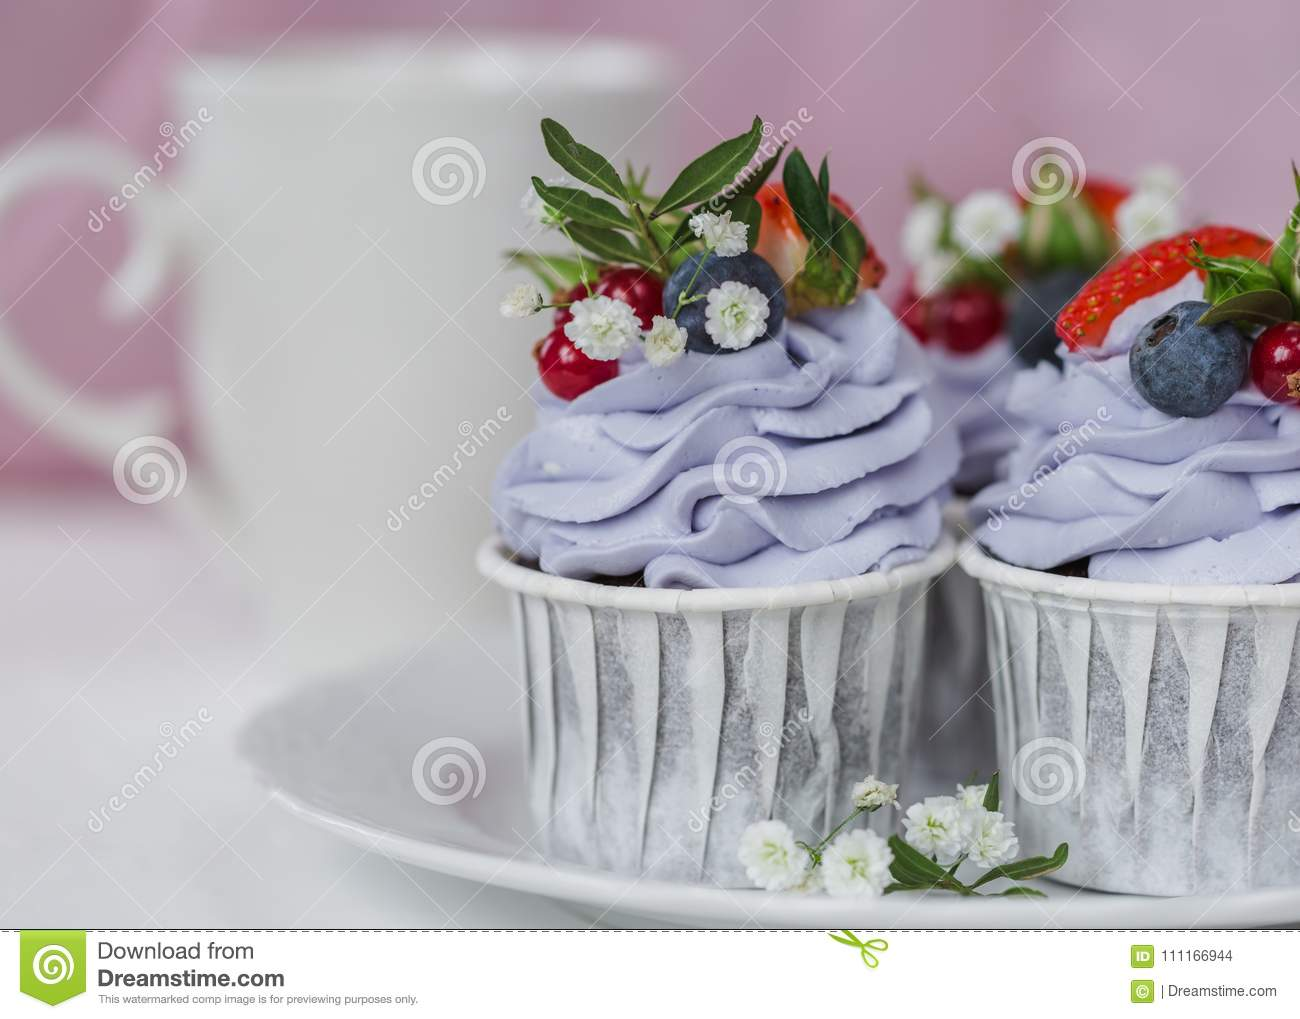 Cupcake with berries and mascarpone